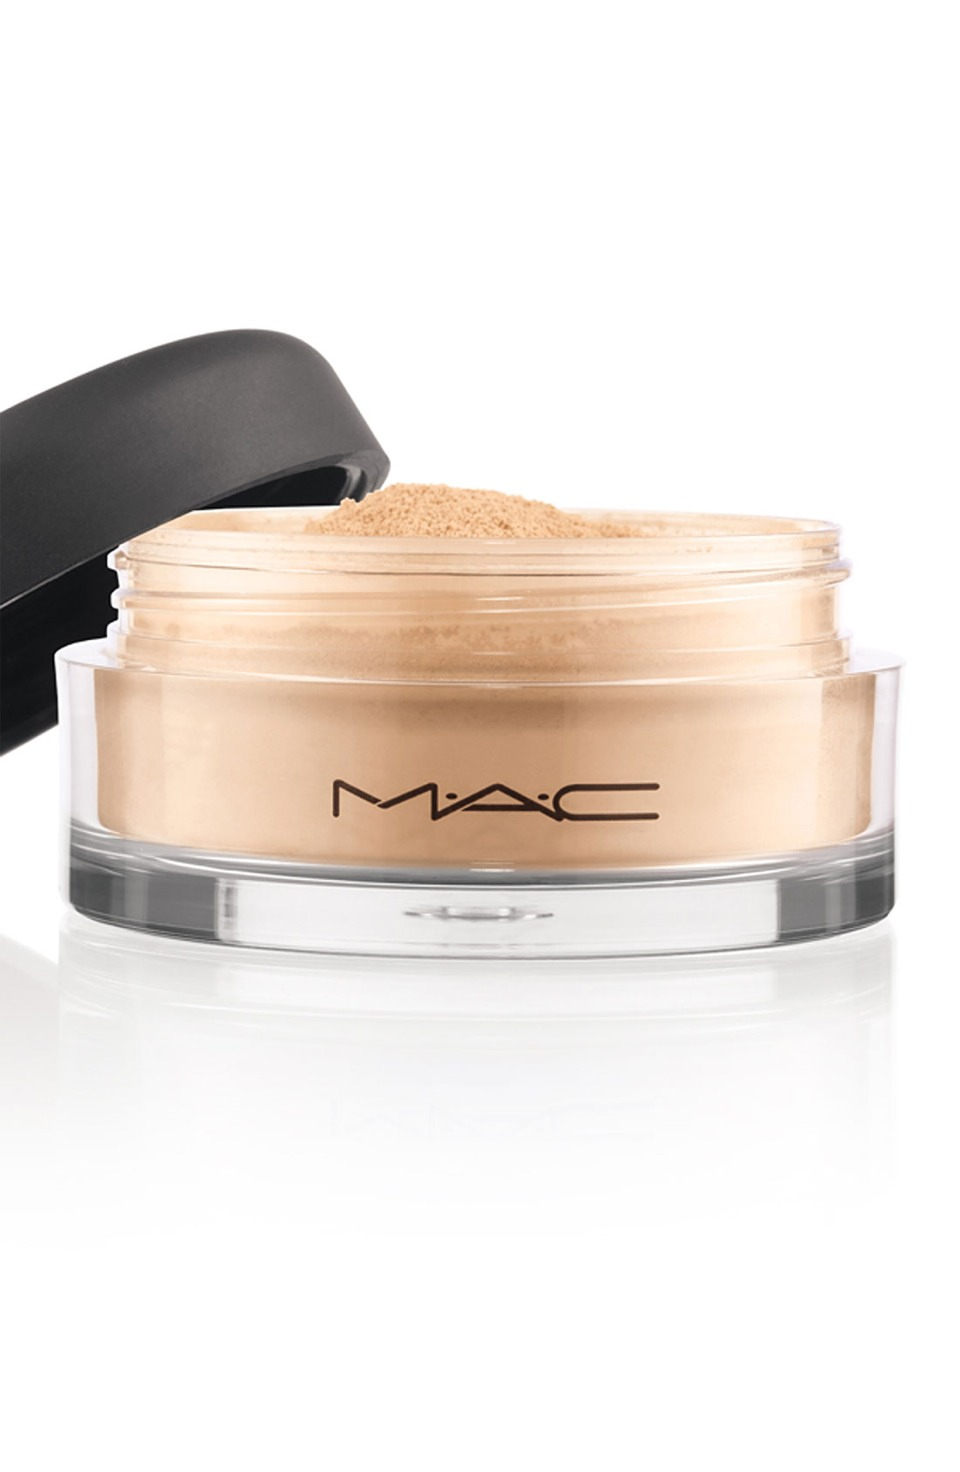 3. Dip a large, soft blusher brush into loose powder and tap off the excess powder, then dab onto greasy areas of the scalp. The powder will soak up the excess oil.